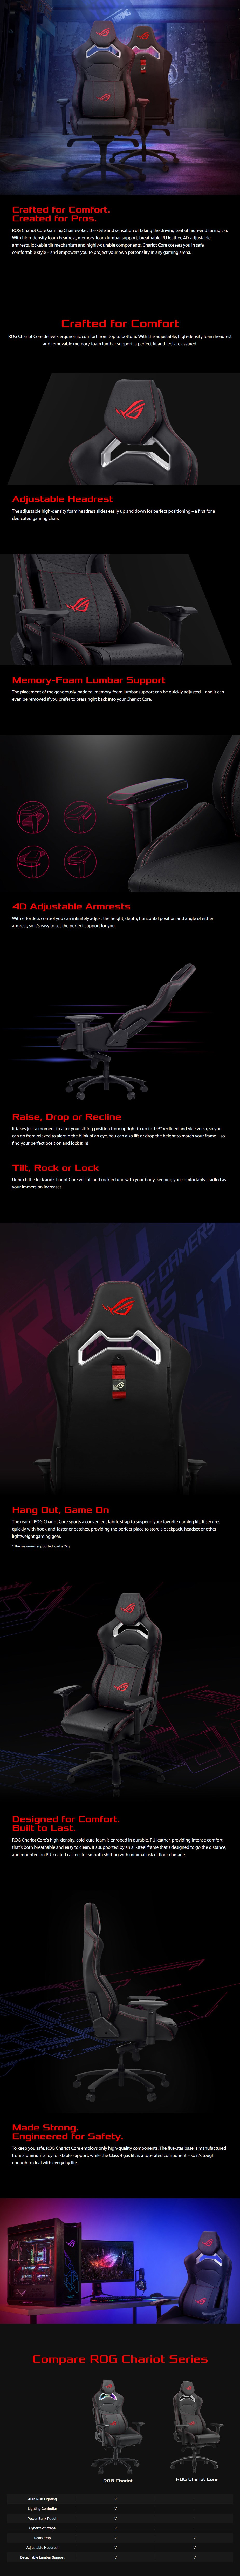 A large marketing image providing additional information about the product ASUS ROG Chariot Core Gaming Chair - Additional alt info not provided